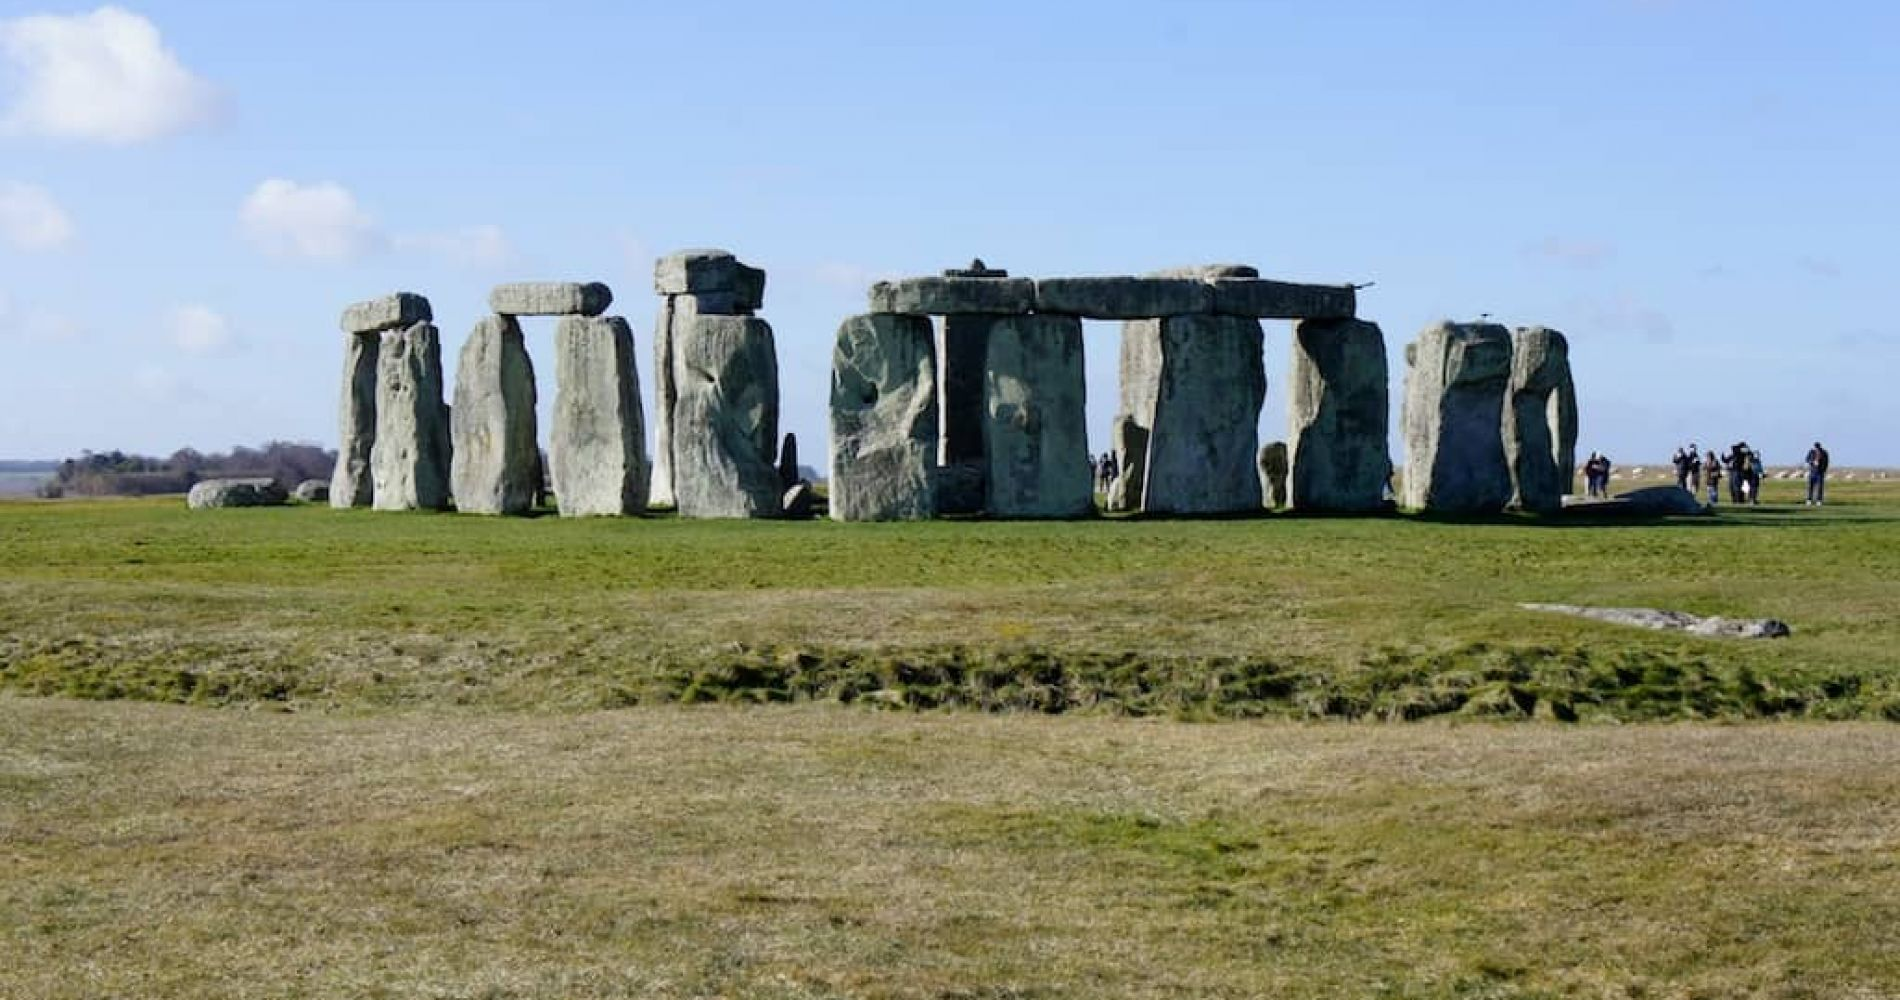 Visit Bath and Discover the Mysterious Stonehenge for Two in the UK